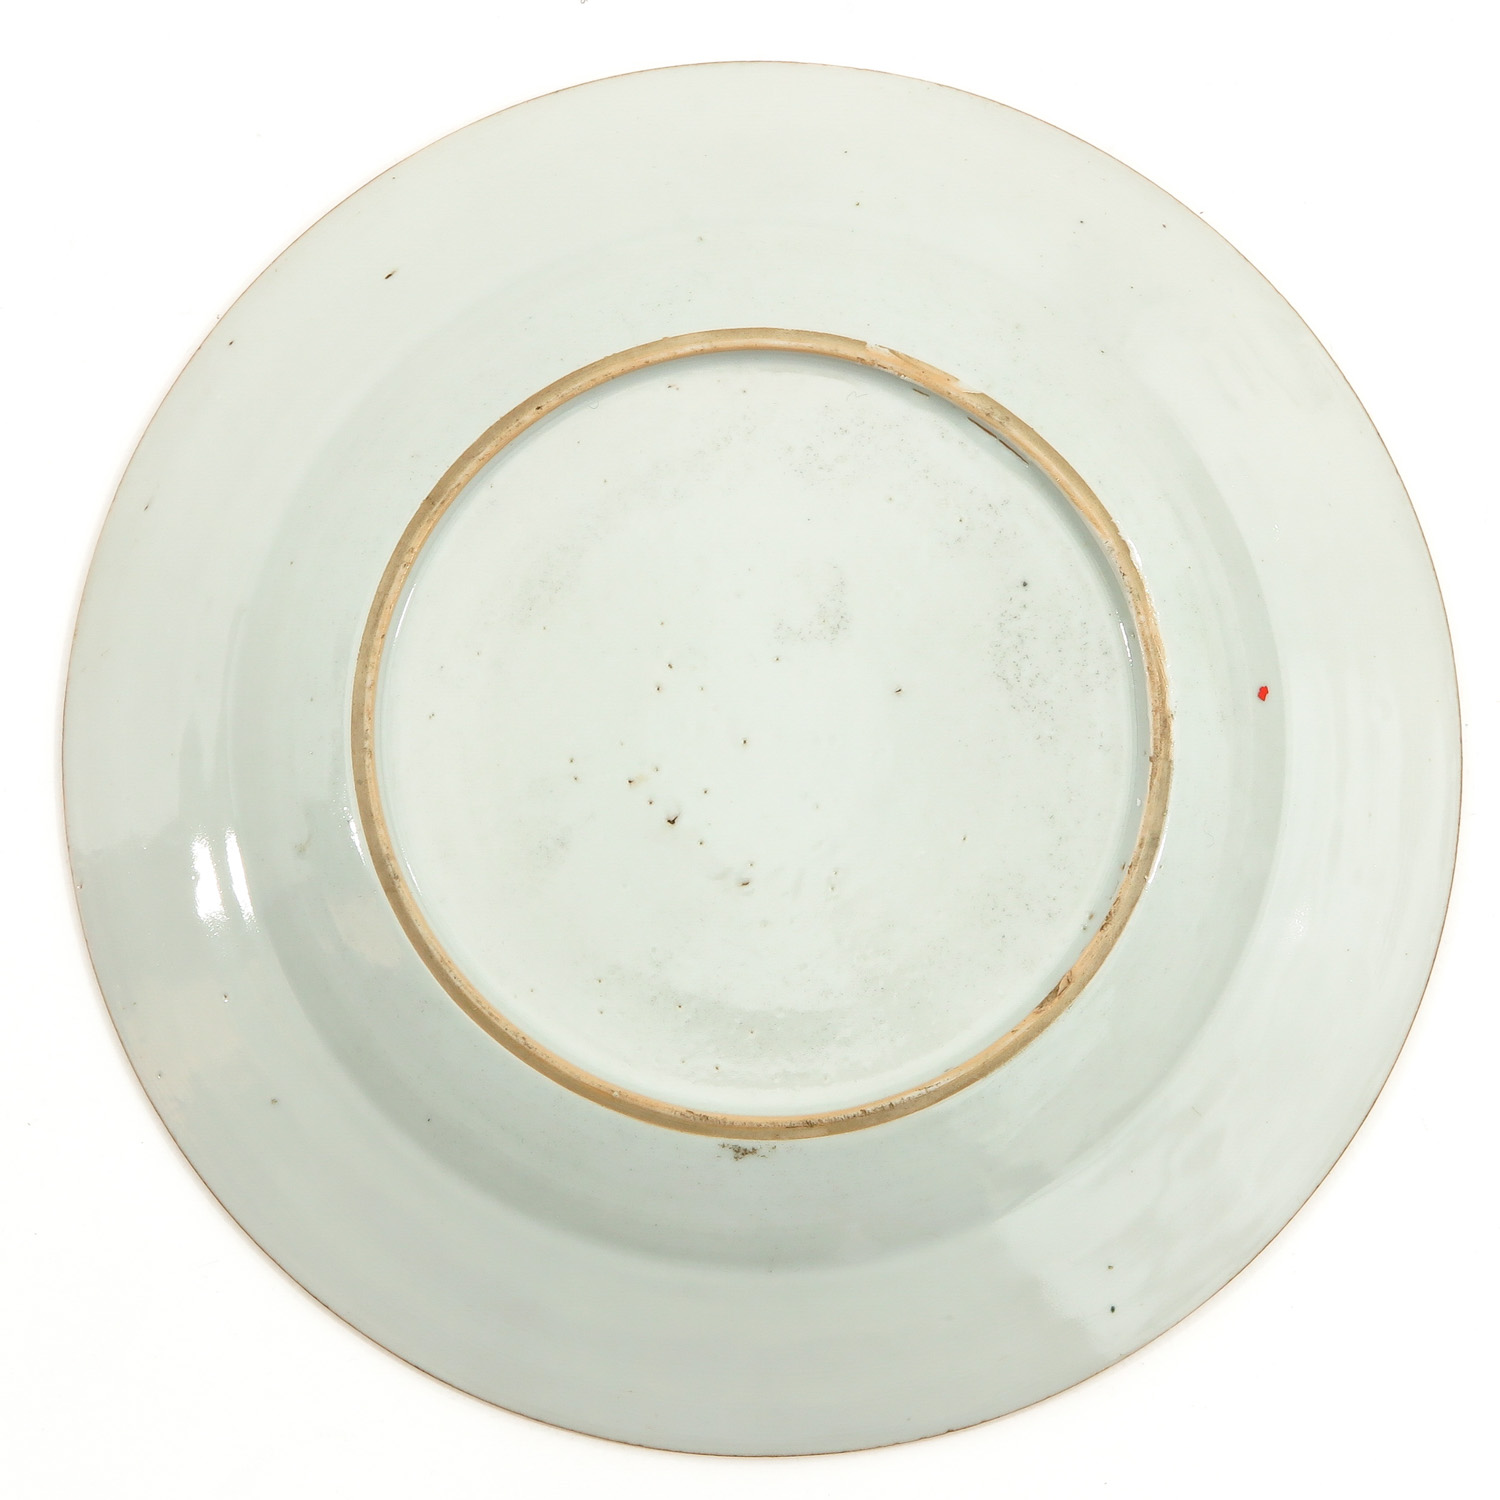 A Collection of 3 Famille Rose Plates - Image 8 of 10